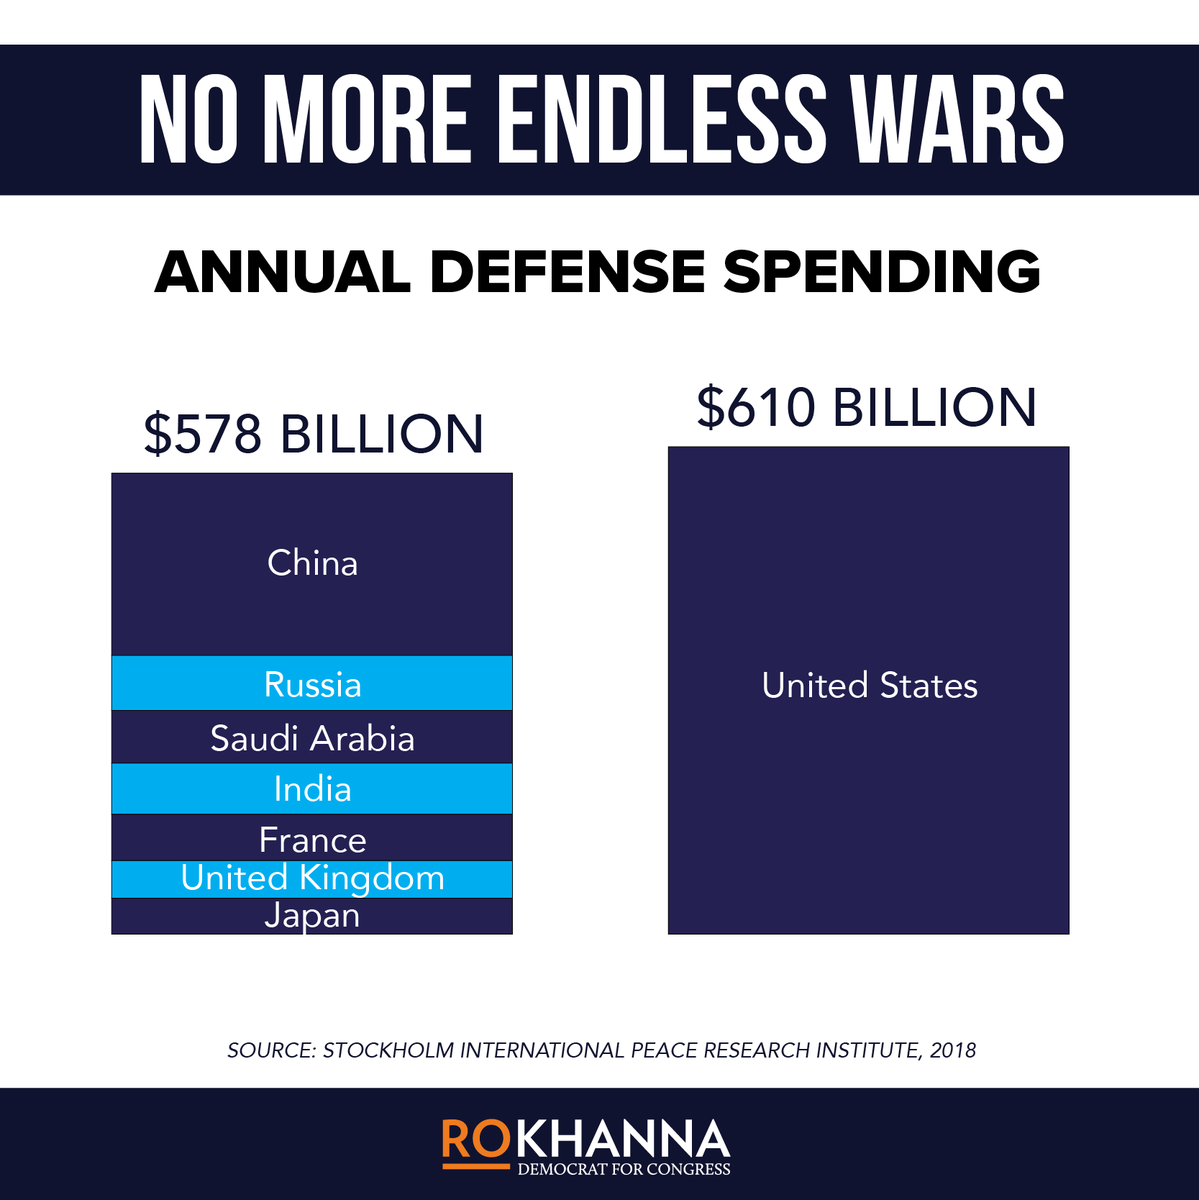 We already spend more on our military than the next seven countries combined.  Now Trump is requesting another massive defense increase while cutting Medicare, Medicaid, and Social Security.  Democrats need to be united: No more money for endless wars.